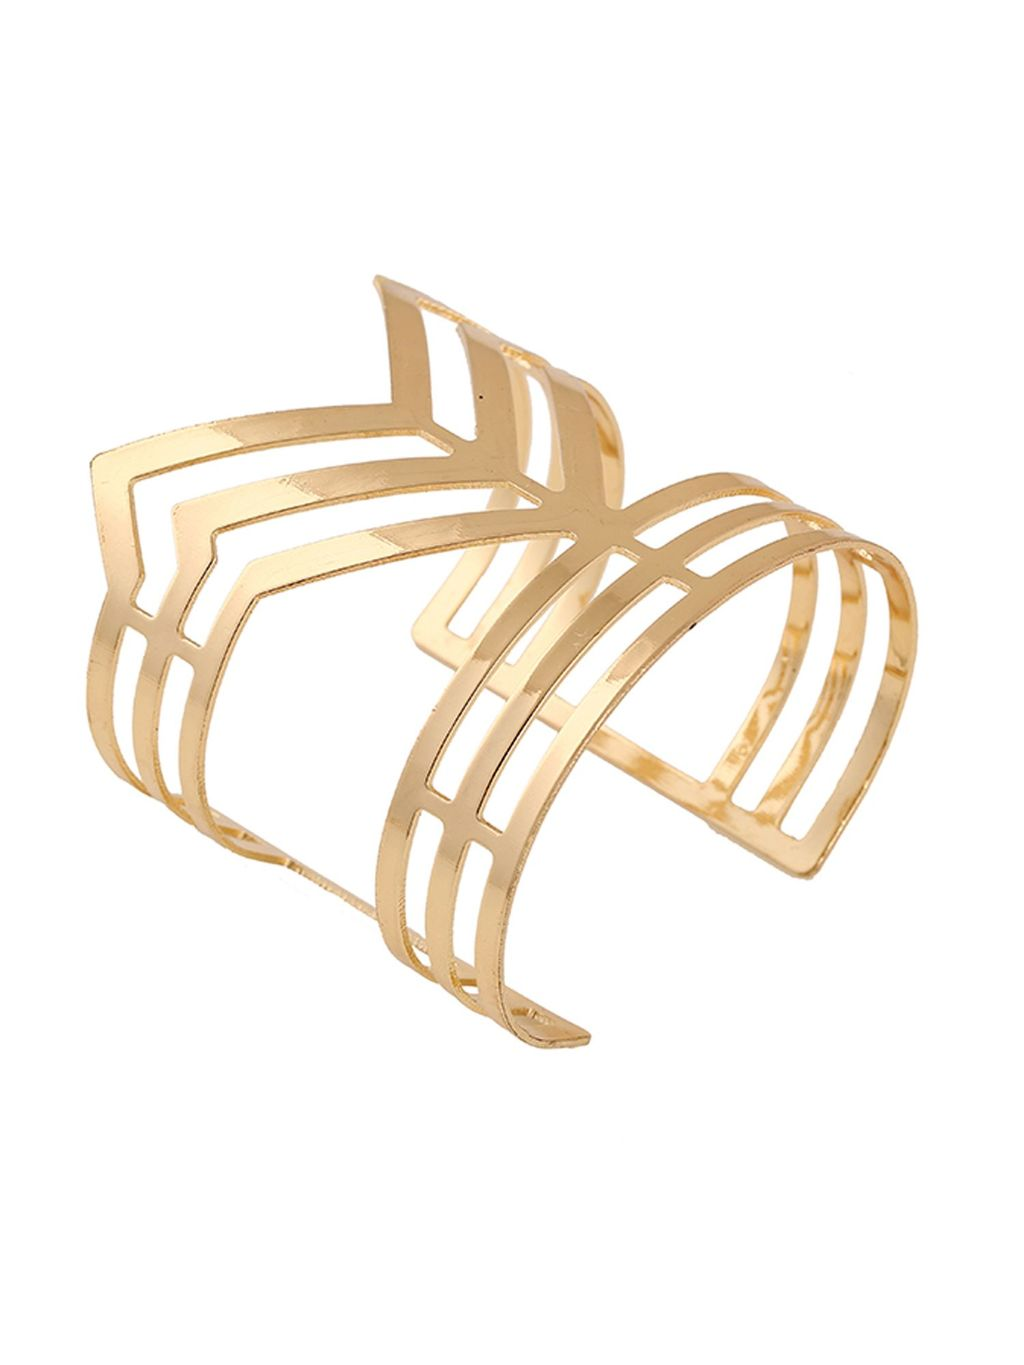 Gold Chevron Bangle, Gold - predominant colour: gold; occasions: evening; style: cuff; size: large/oversized; material: chain/metal; finish: metallic; season: s/s 2016; wardrobe: event